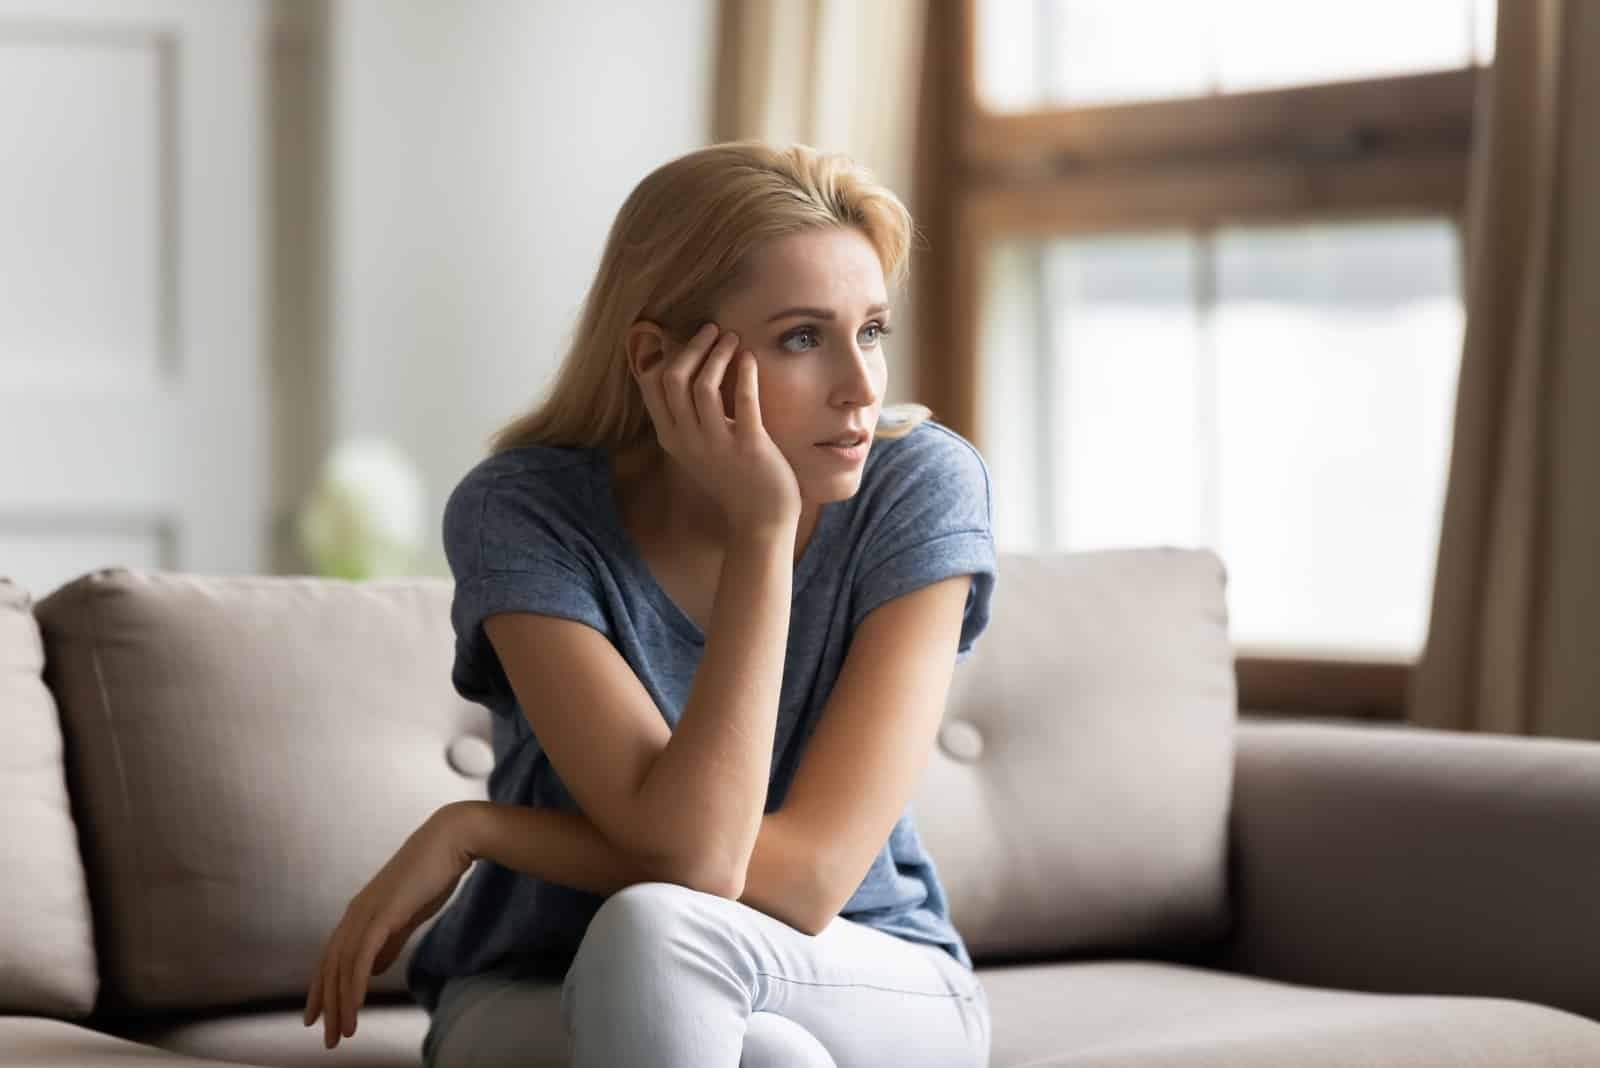 a pensive woman sitting on the couch